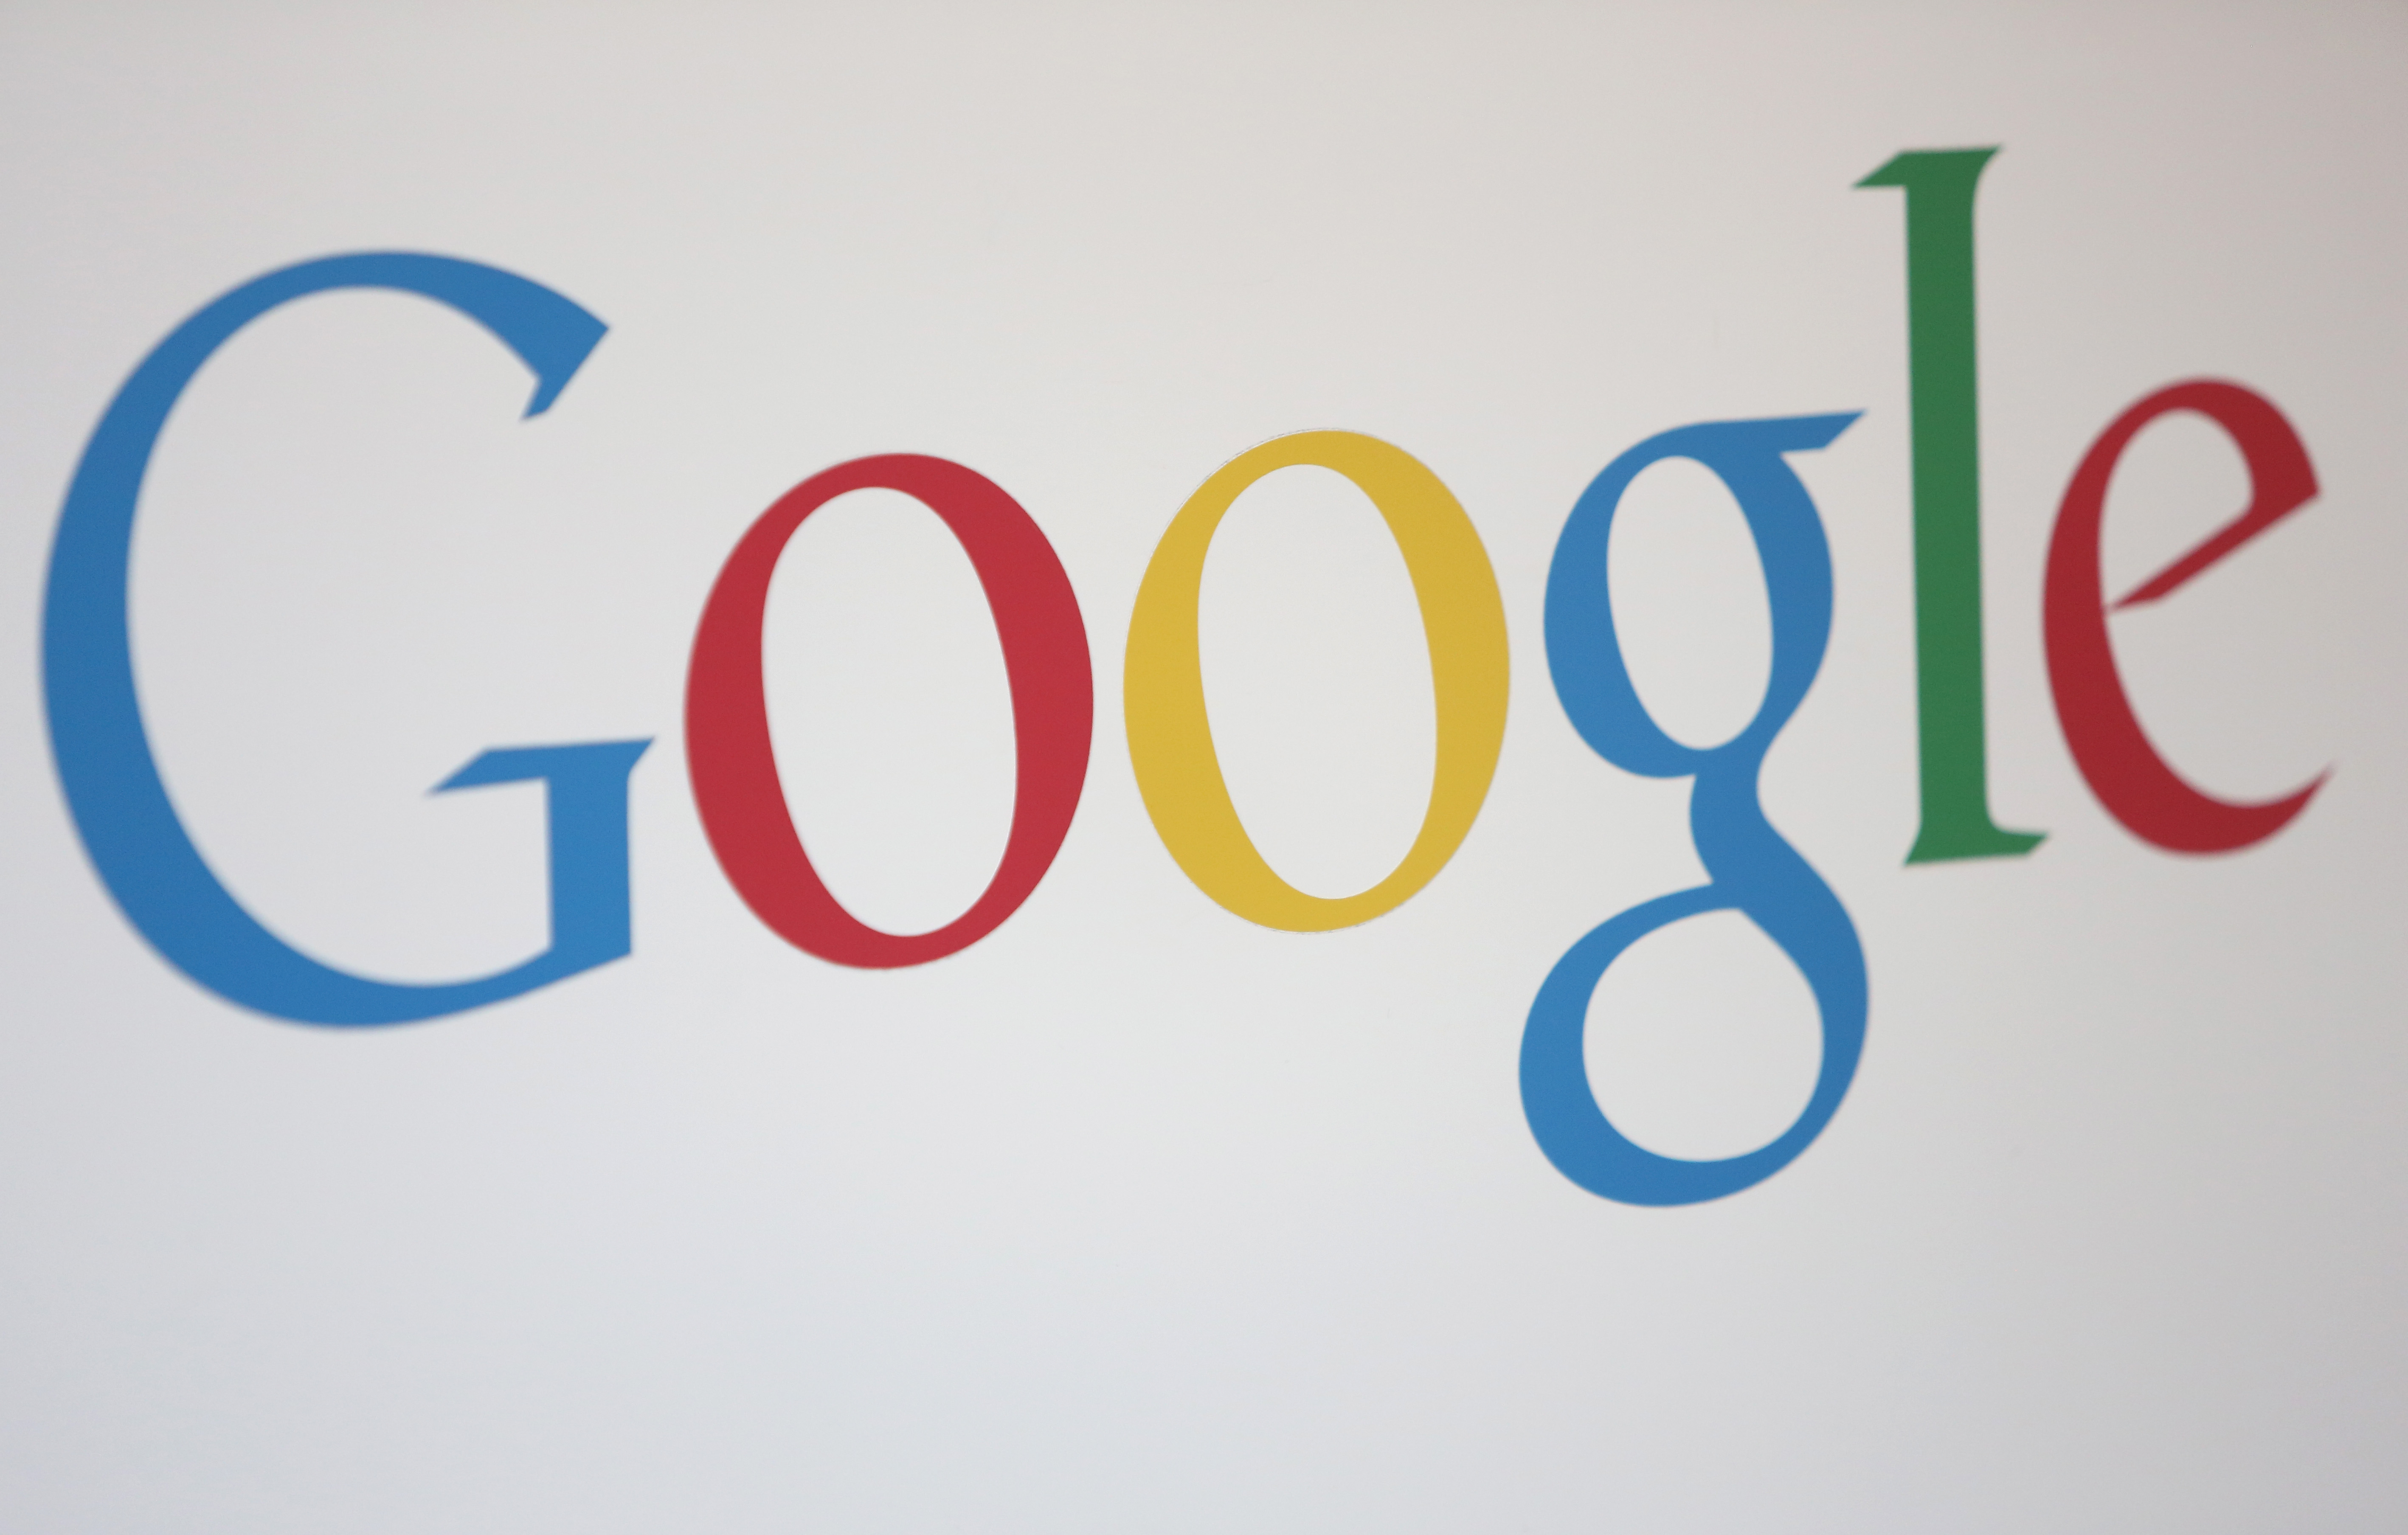 The Google logo is seen at the company's offices on August 21, 2014 in Berlin, Germany.